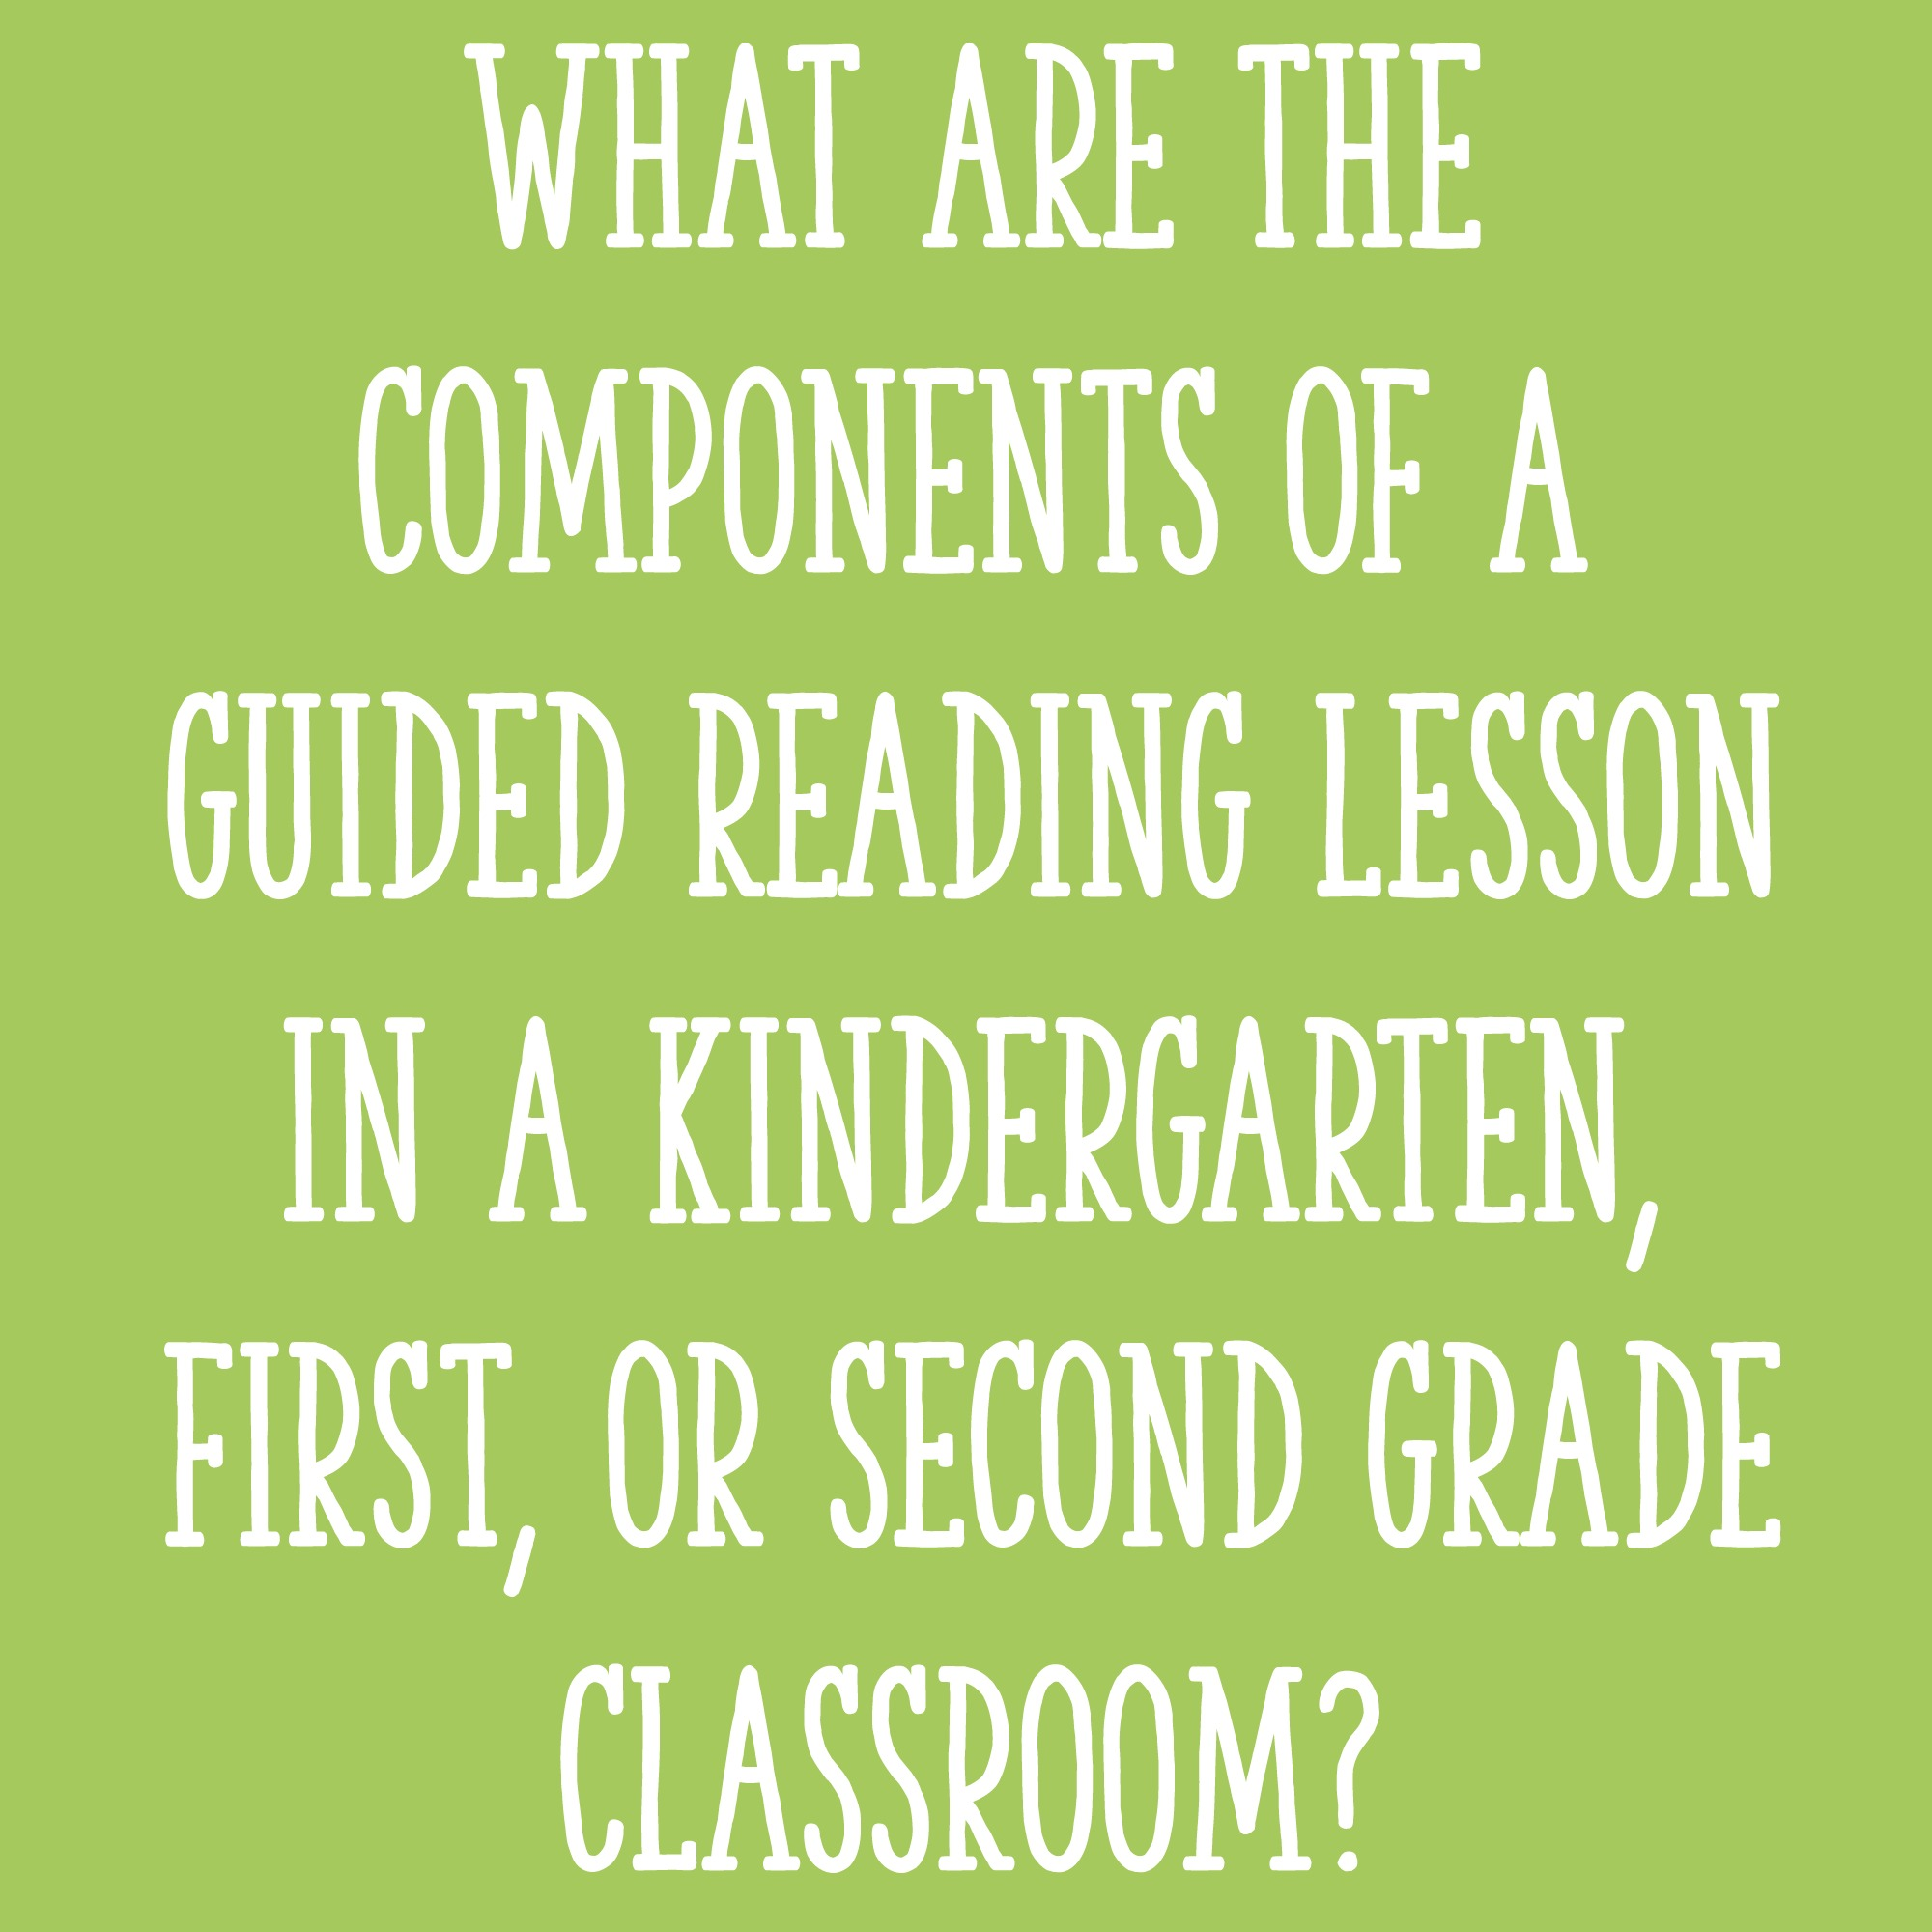 What Are The Components Of A Guided Reading Lesson In A Kindergarten - Guided reading lesson plan template fountas and pinnell